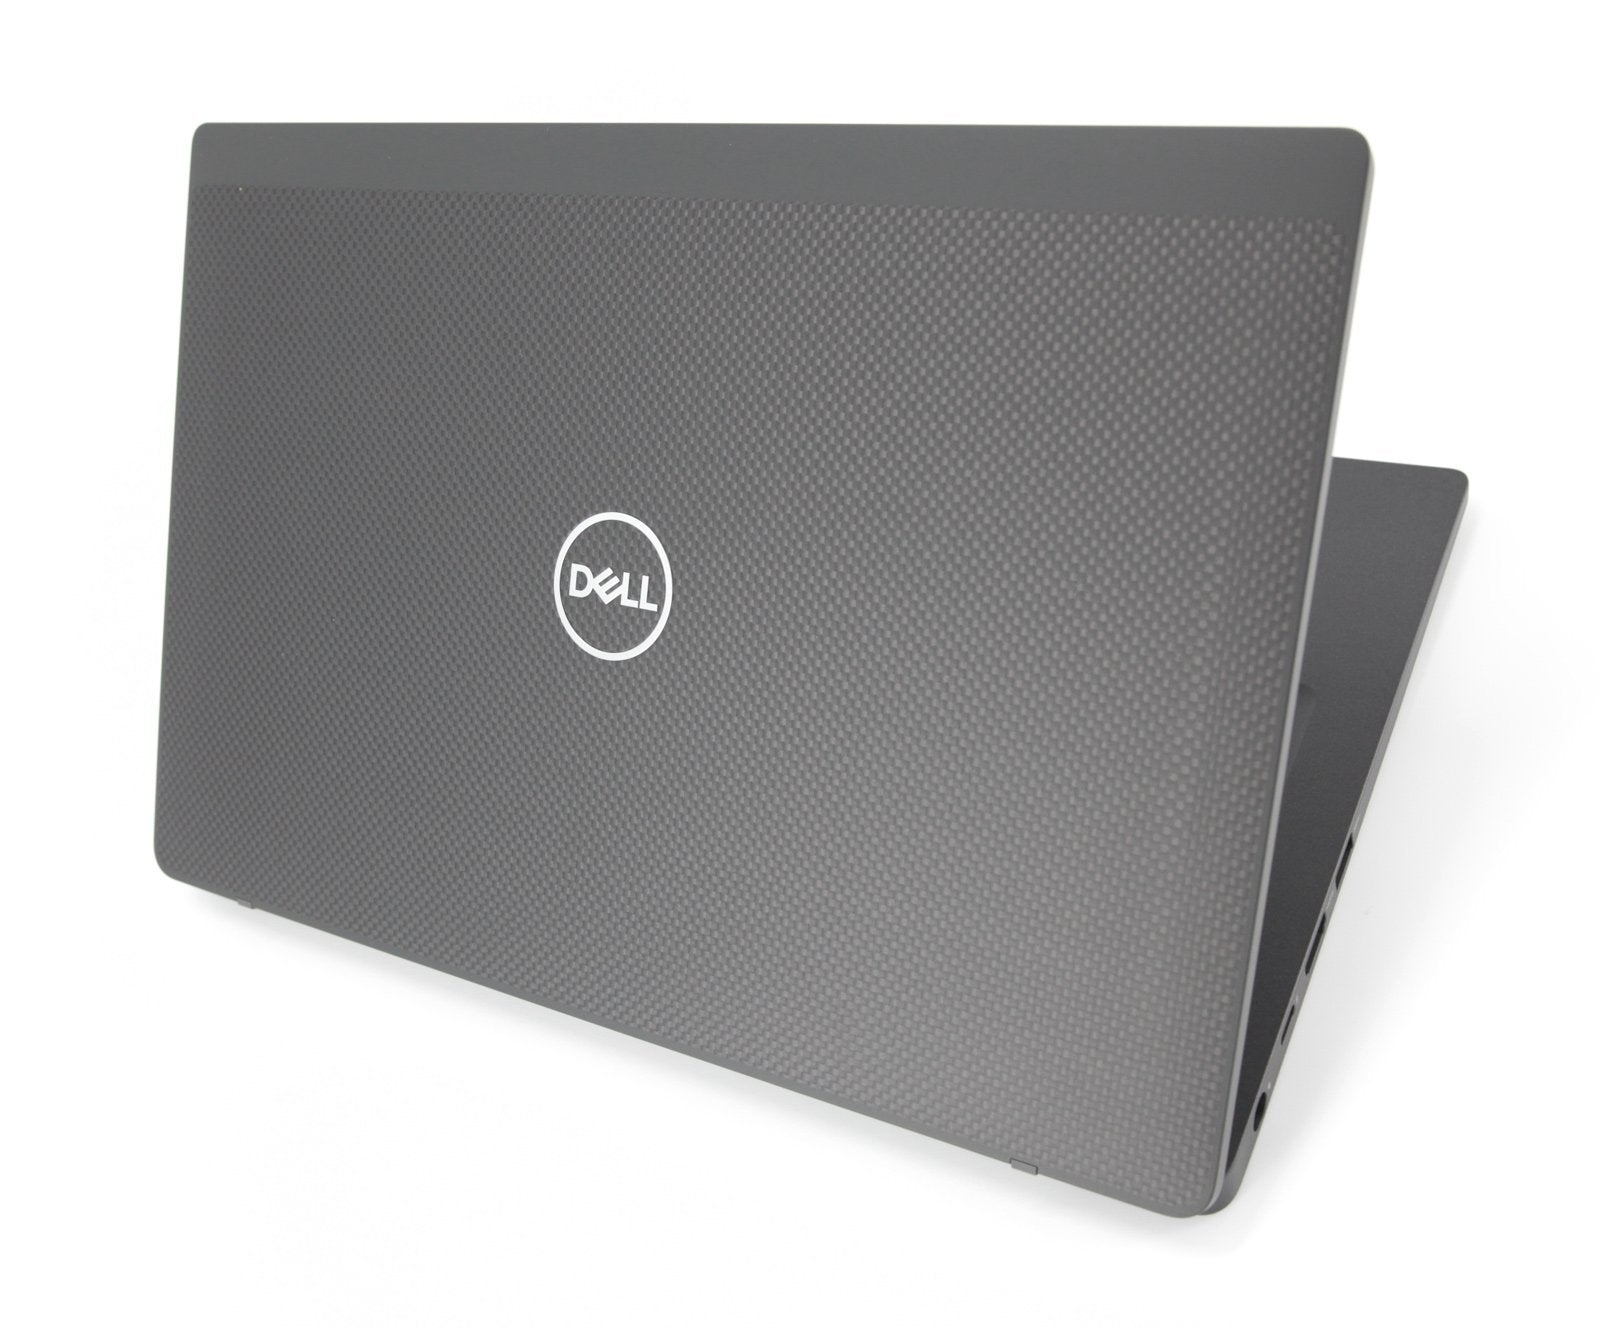 Dell Latitude 7400 Laptop (2019): Core i7 16GB RAM 256GB 1.36Kg 14